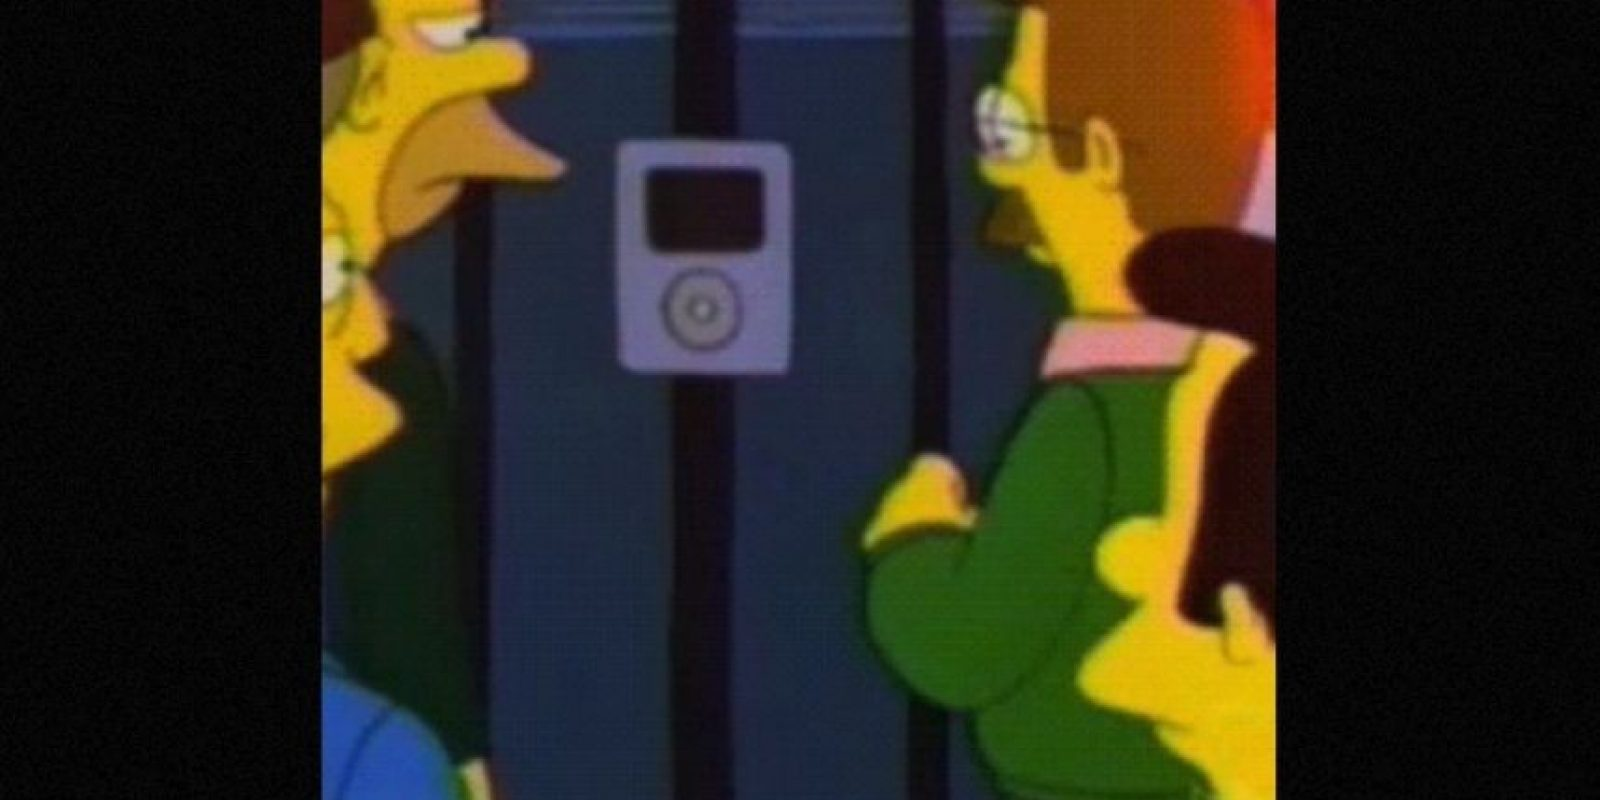 En 1996, el Intercom de la casa del Sr. Burns parecía un iPod. Foto: vía FOX